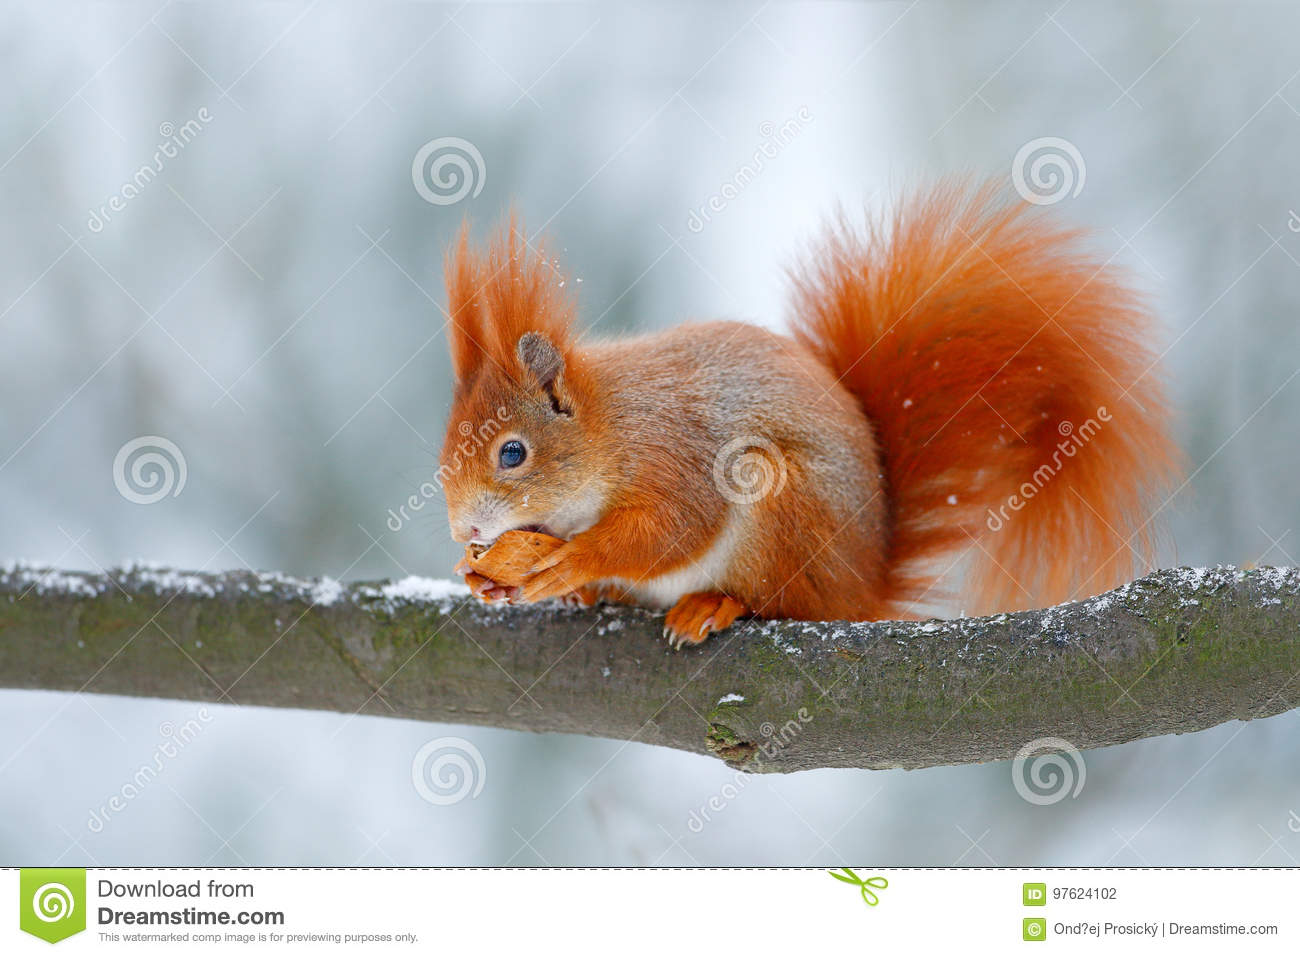 cute orange red squirrel eats a nut in winter scene with